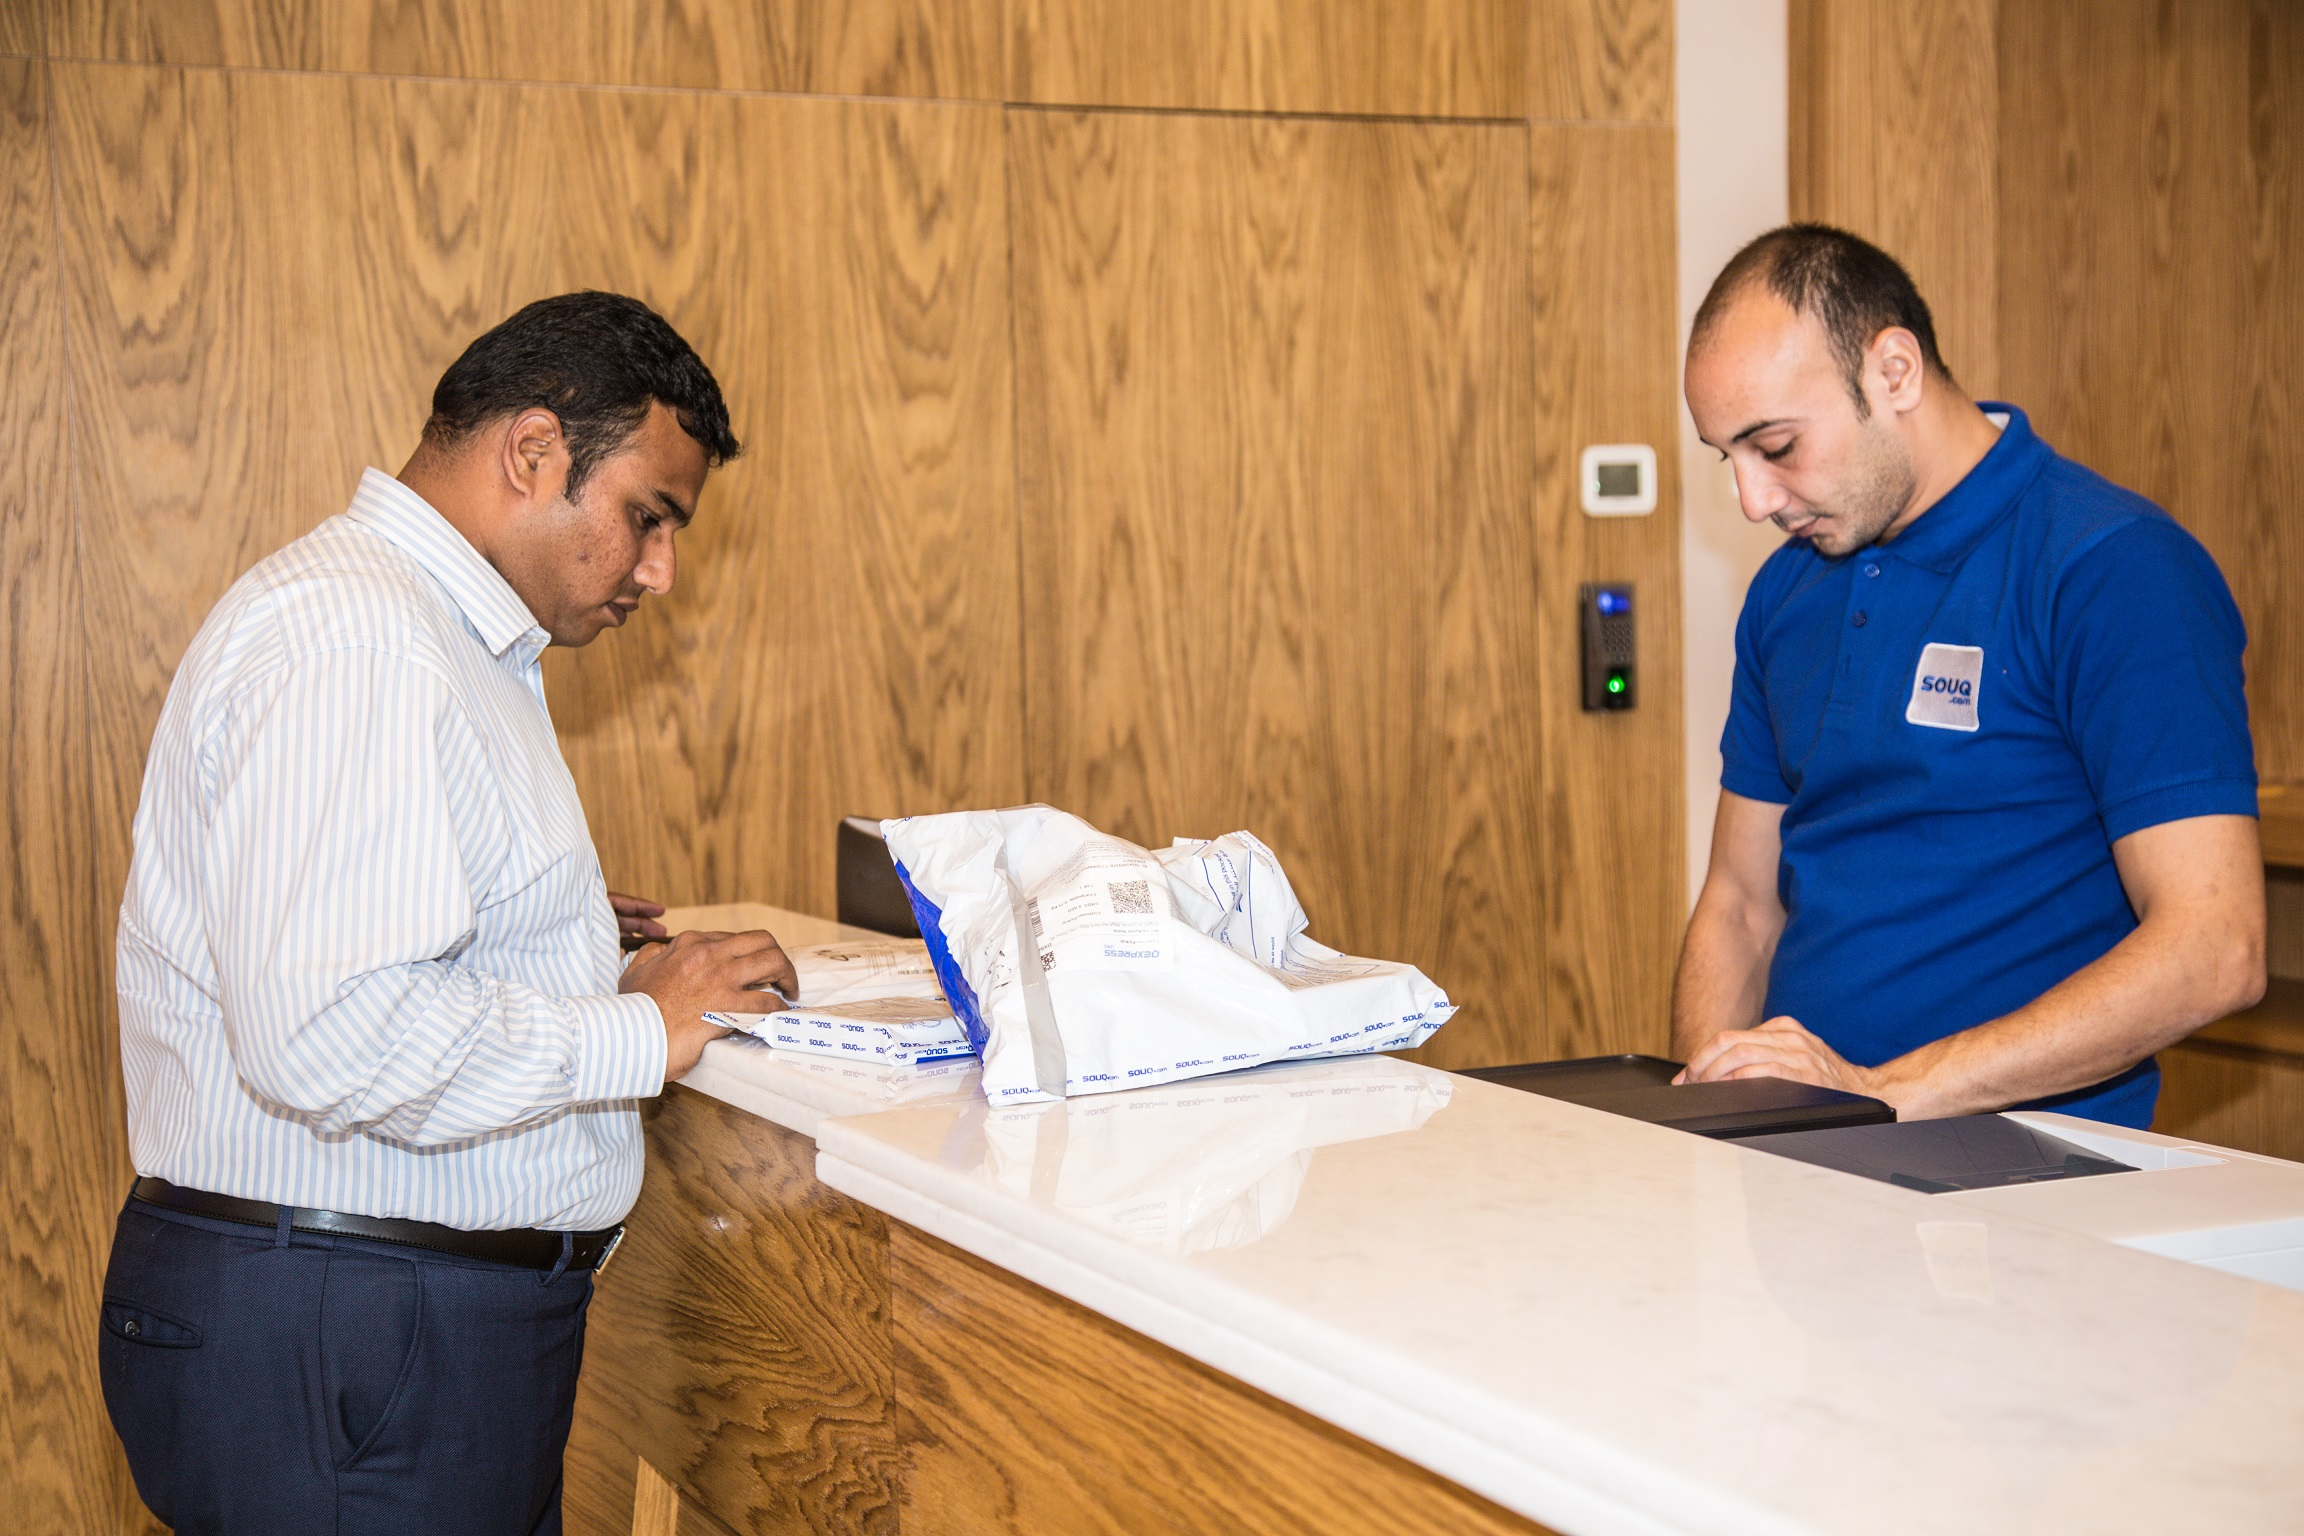 Souq launches a physical store so you don't have to wait for delivery